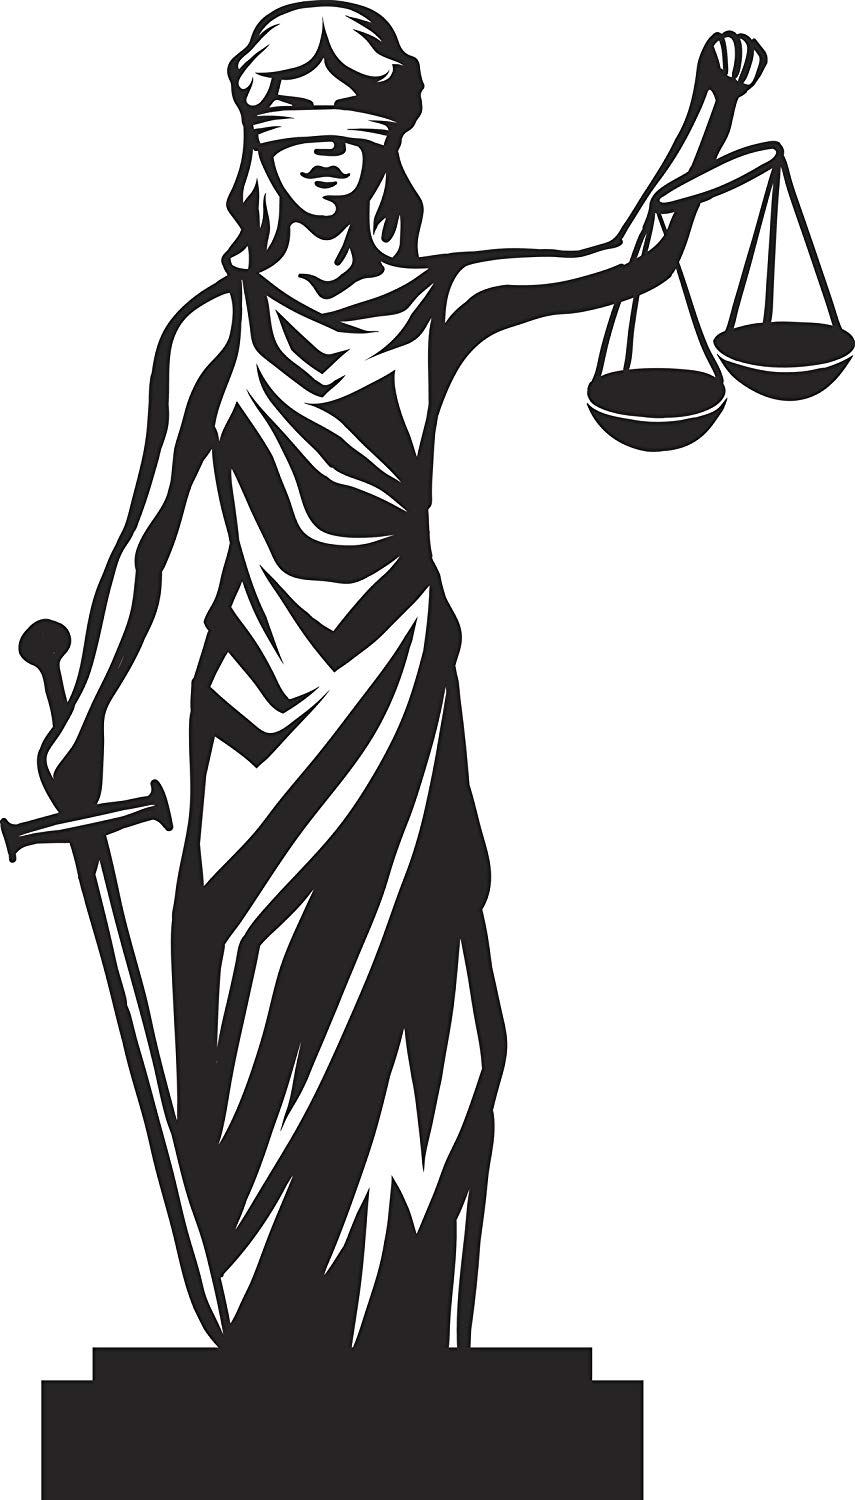 Amazon Com Black And White Goddess Lustitia Lady Justice Cartoon Vinyl Sticker 8 Tall Automotive Lady Justice Justitia Cute Bear Drawings